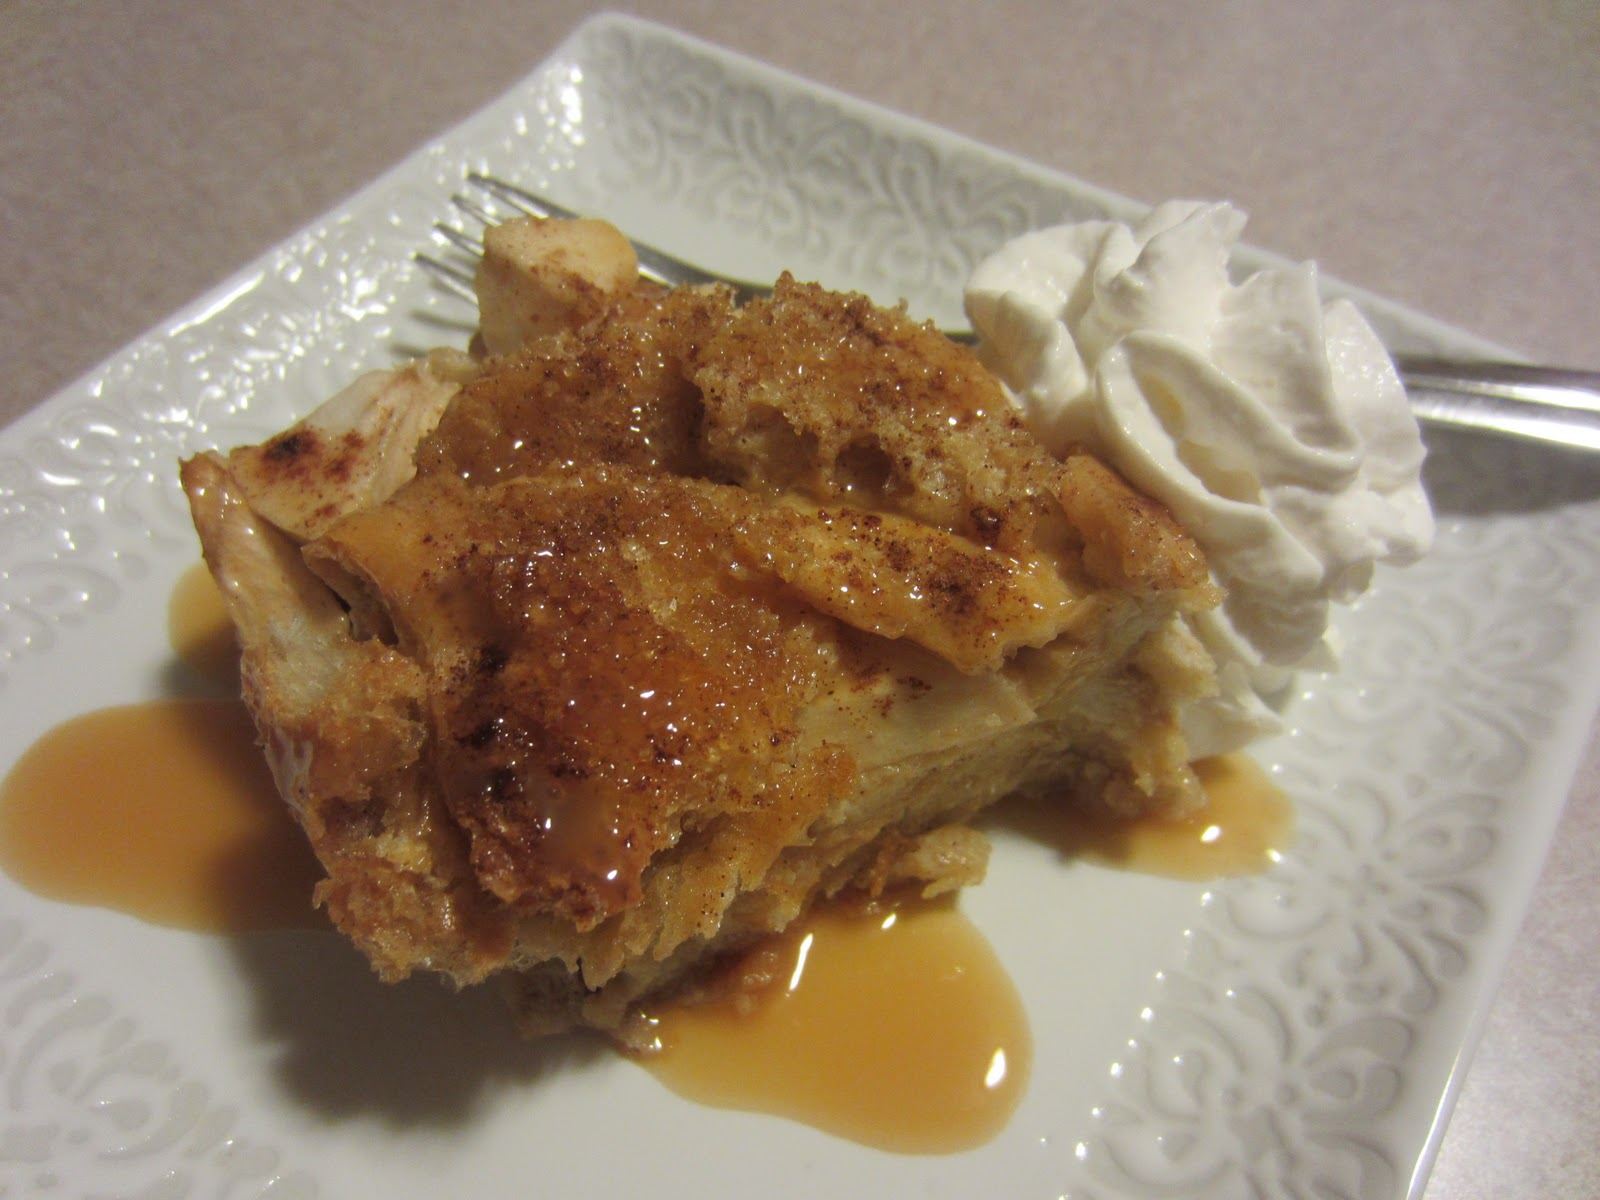 Renee's Kitchen Adventures: Caramel Apple Bread Pudding